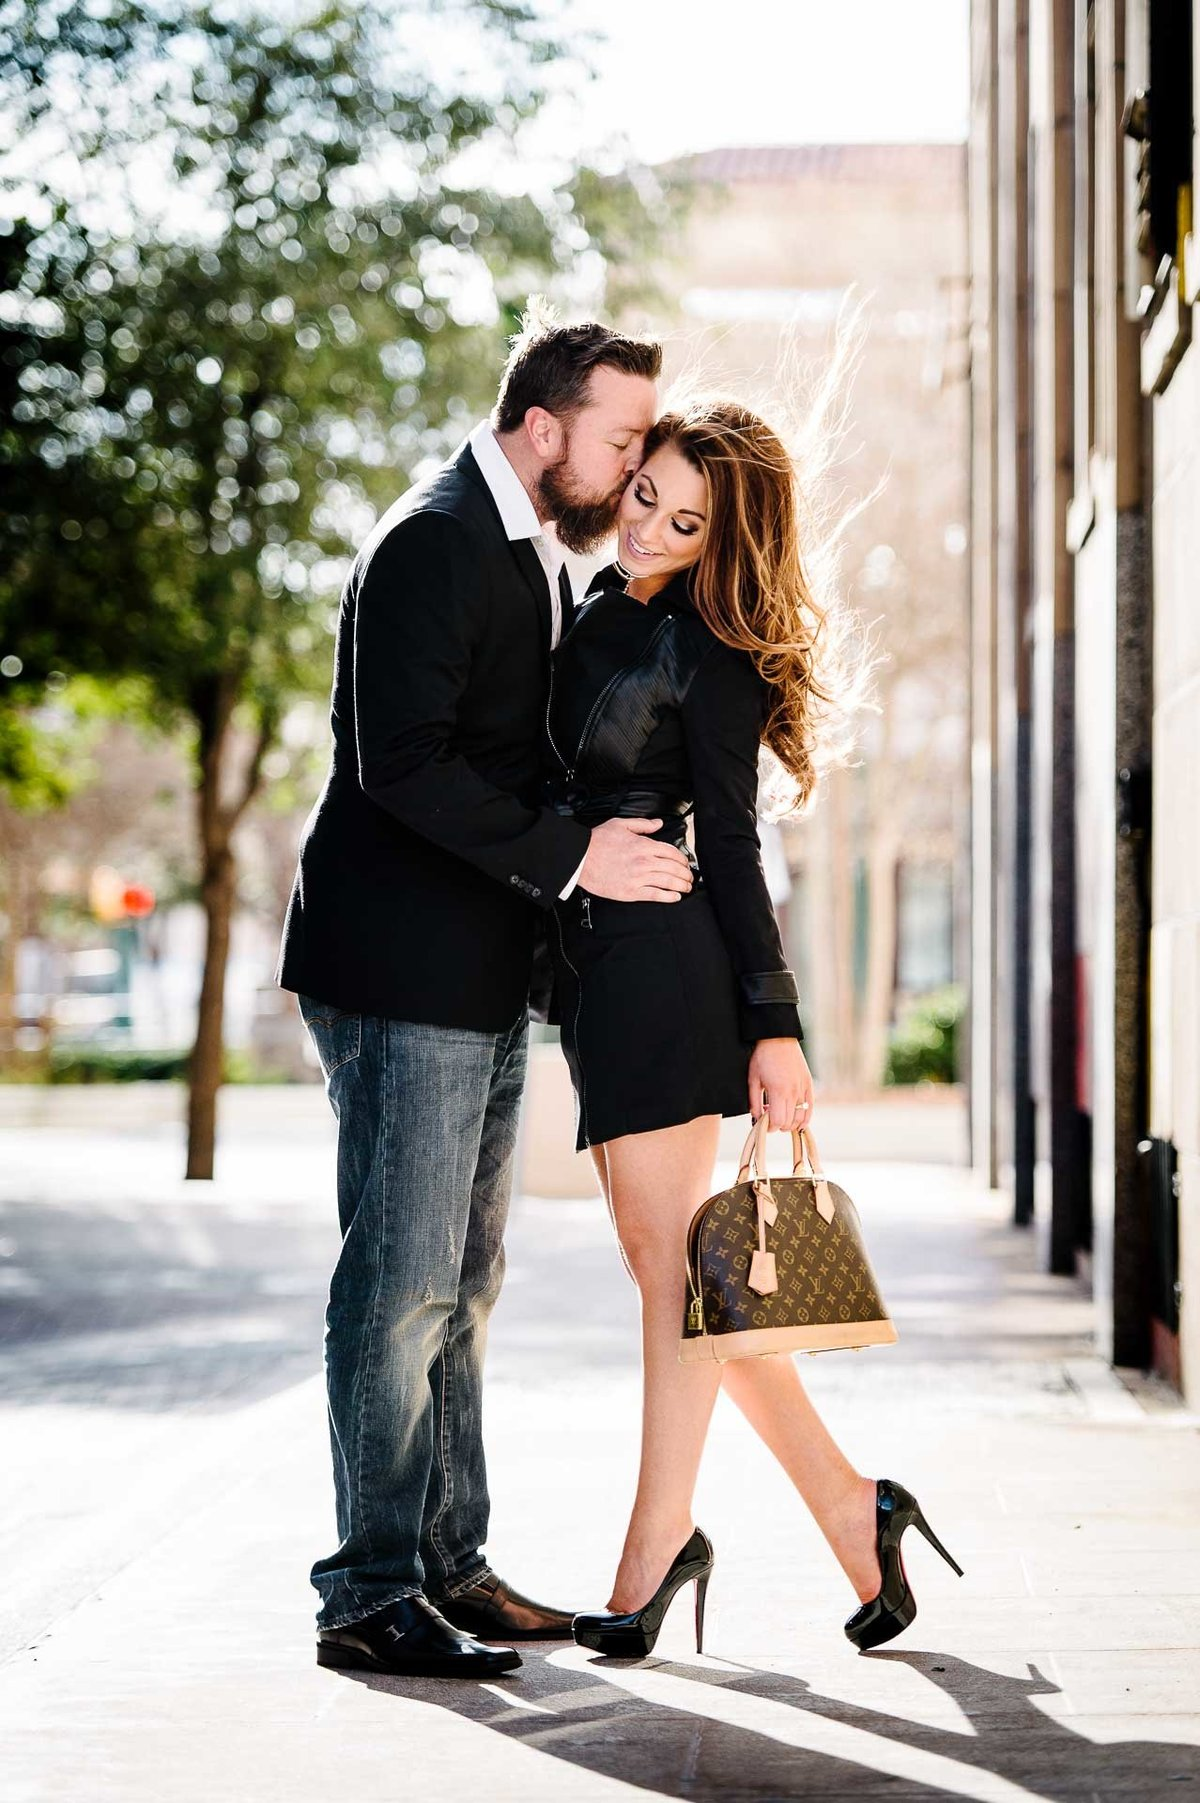 engagement photo louis vuitton in el paso texas by stephane lemaire photography